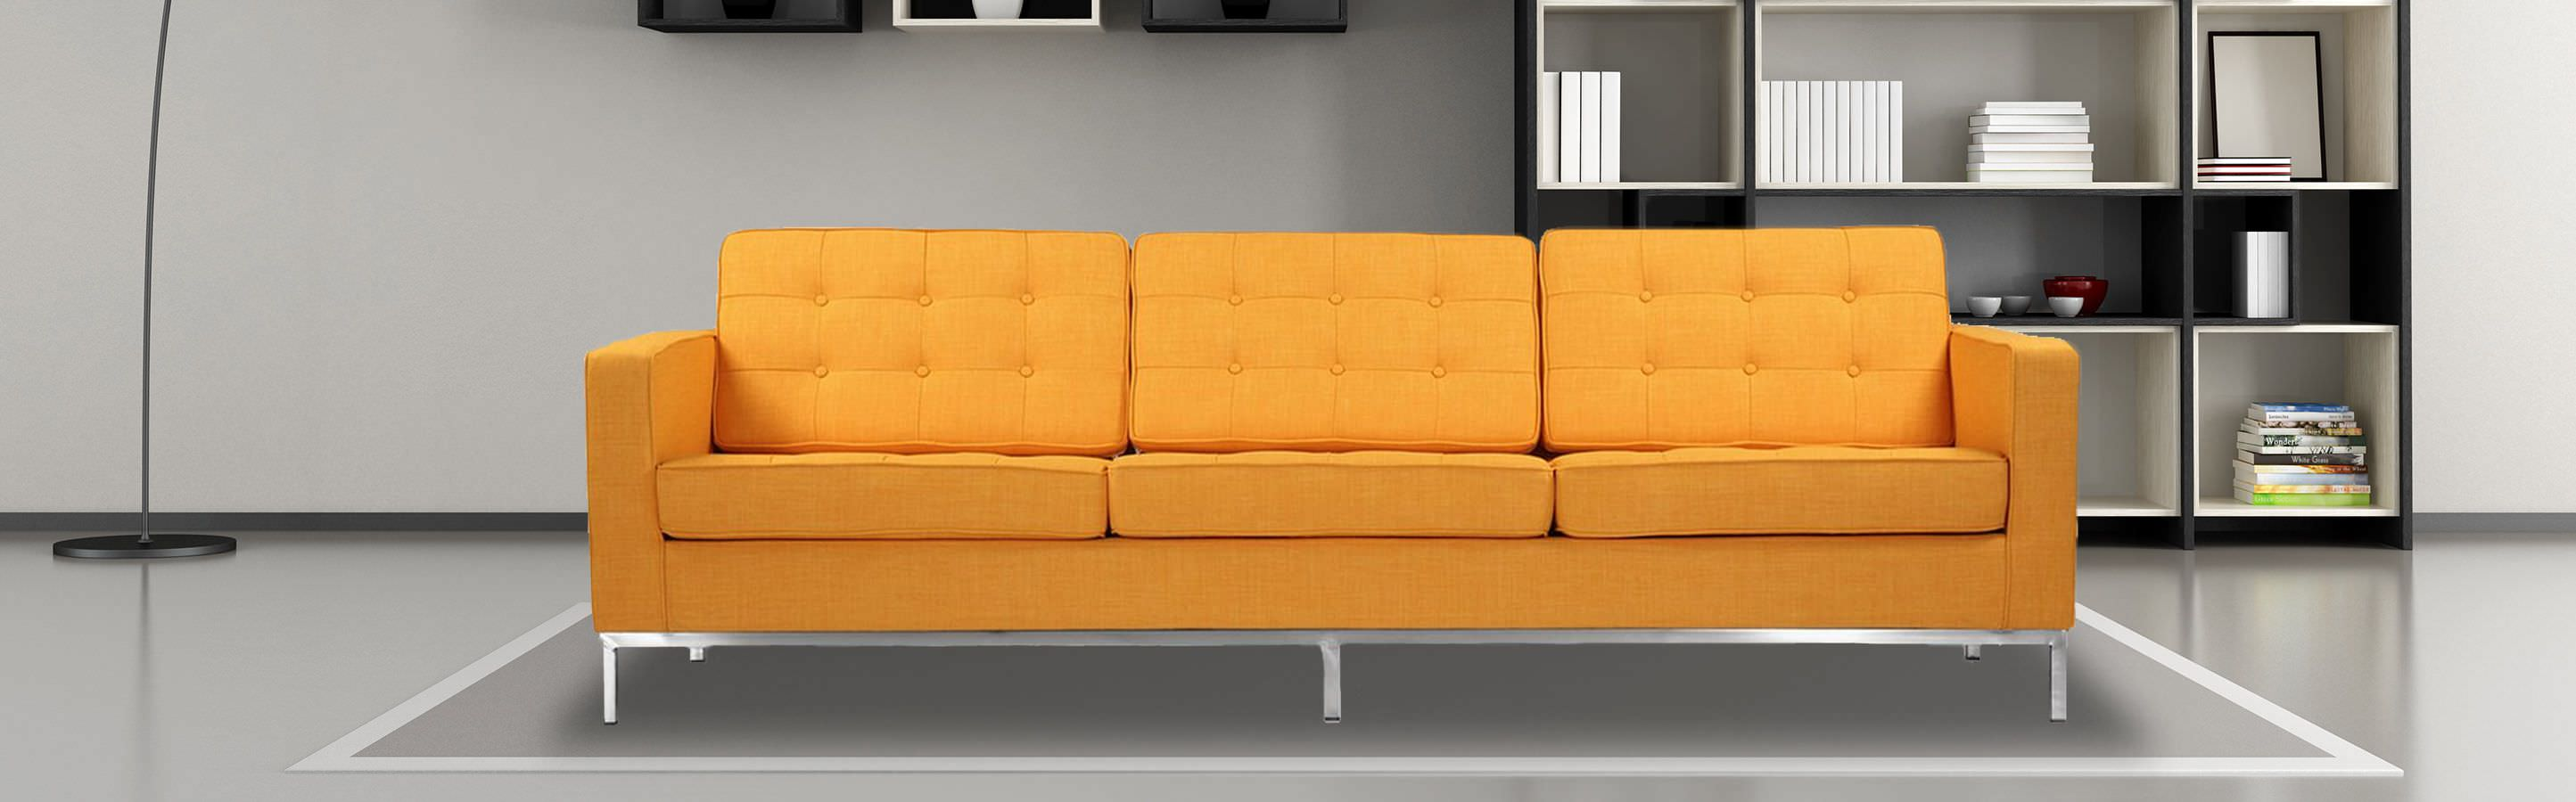 Collections florence series florence knoll sofas page 1 kardiel - Florence knoll sofa gebraucht ...